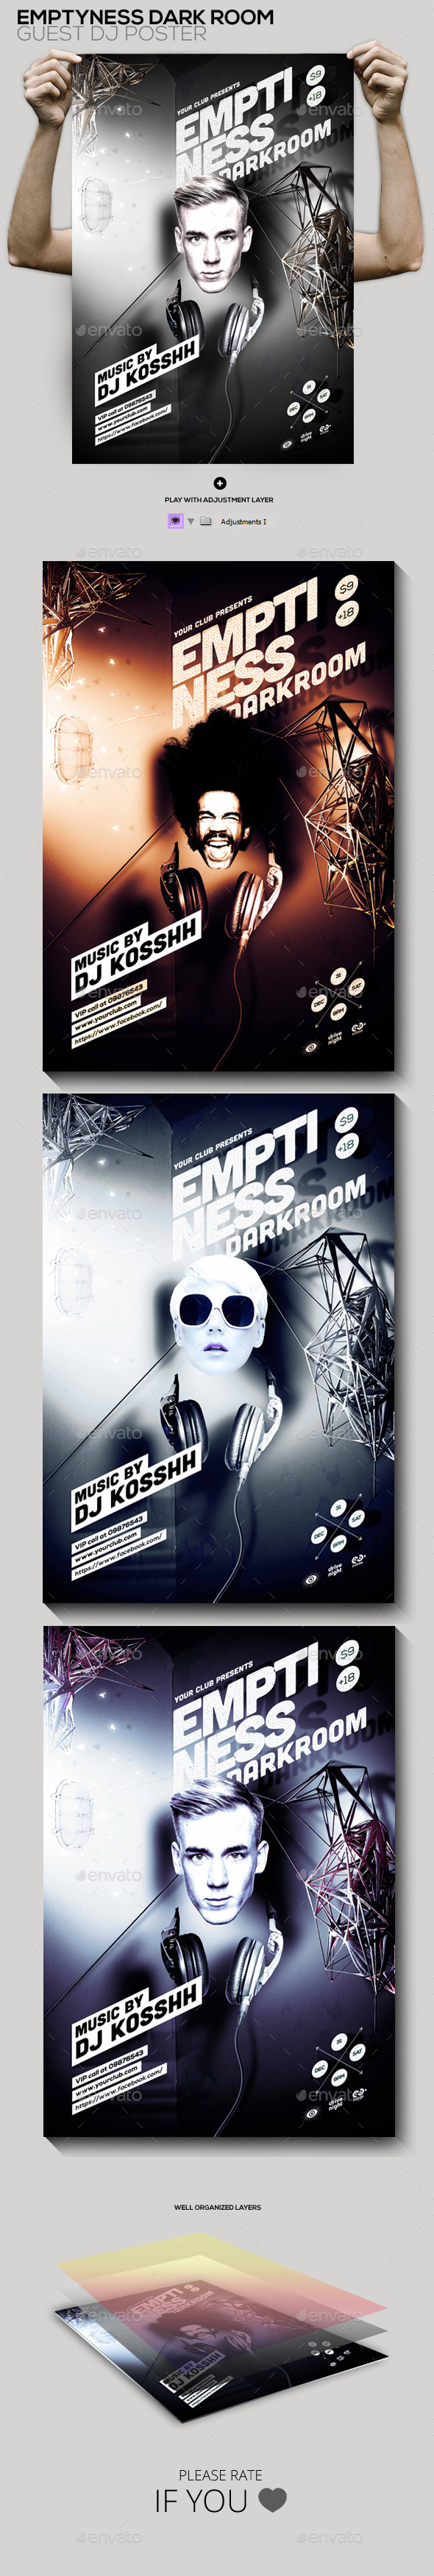 GraphicRiver Emptiness Darkroom Guest Dj Party Flyer Poster 10397688